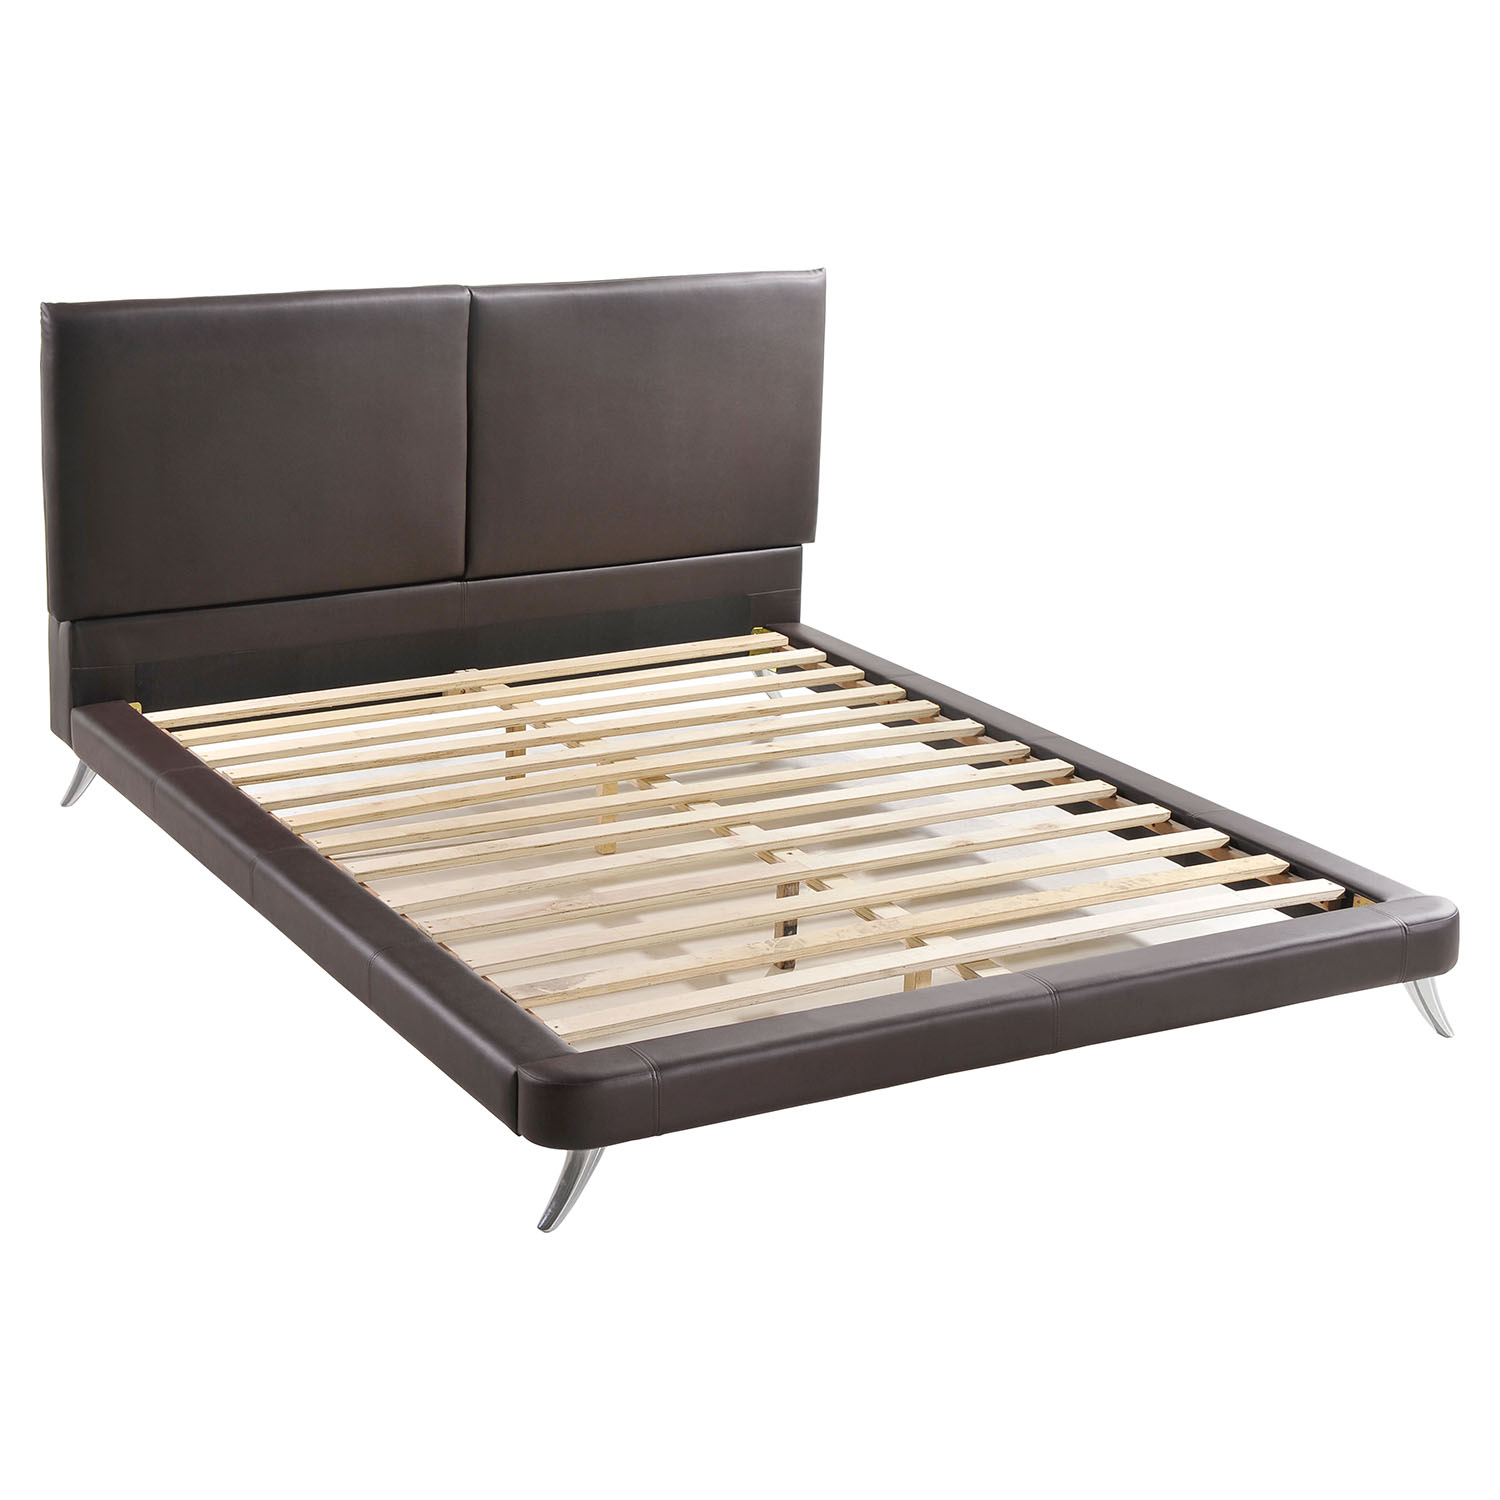 Rivette Bed - Espresso - ZM-80022-ES-BED